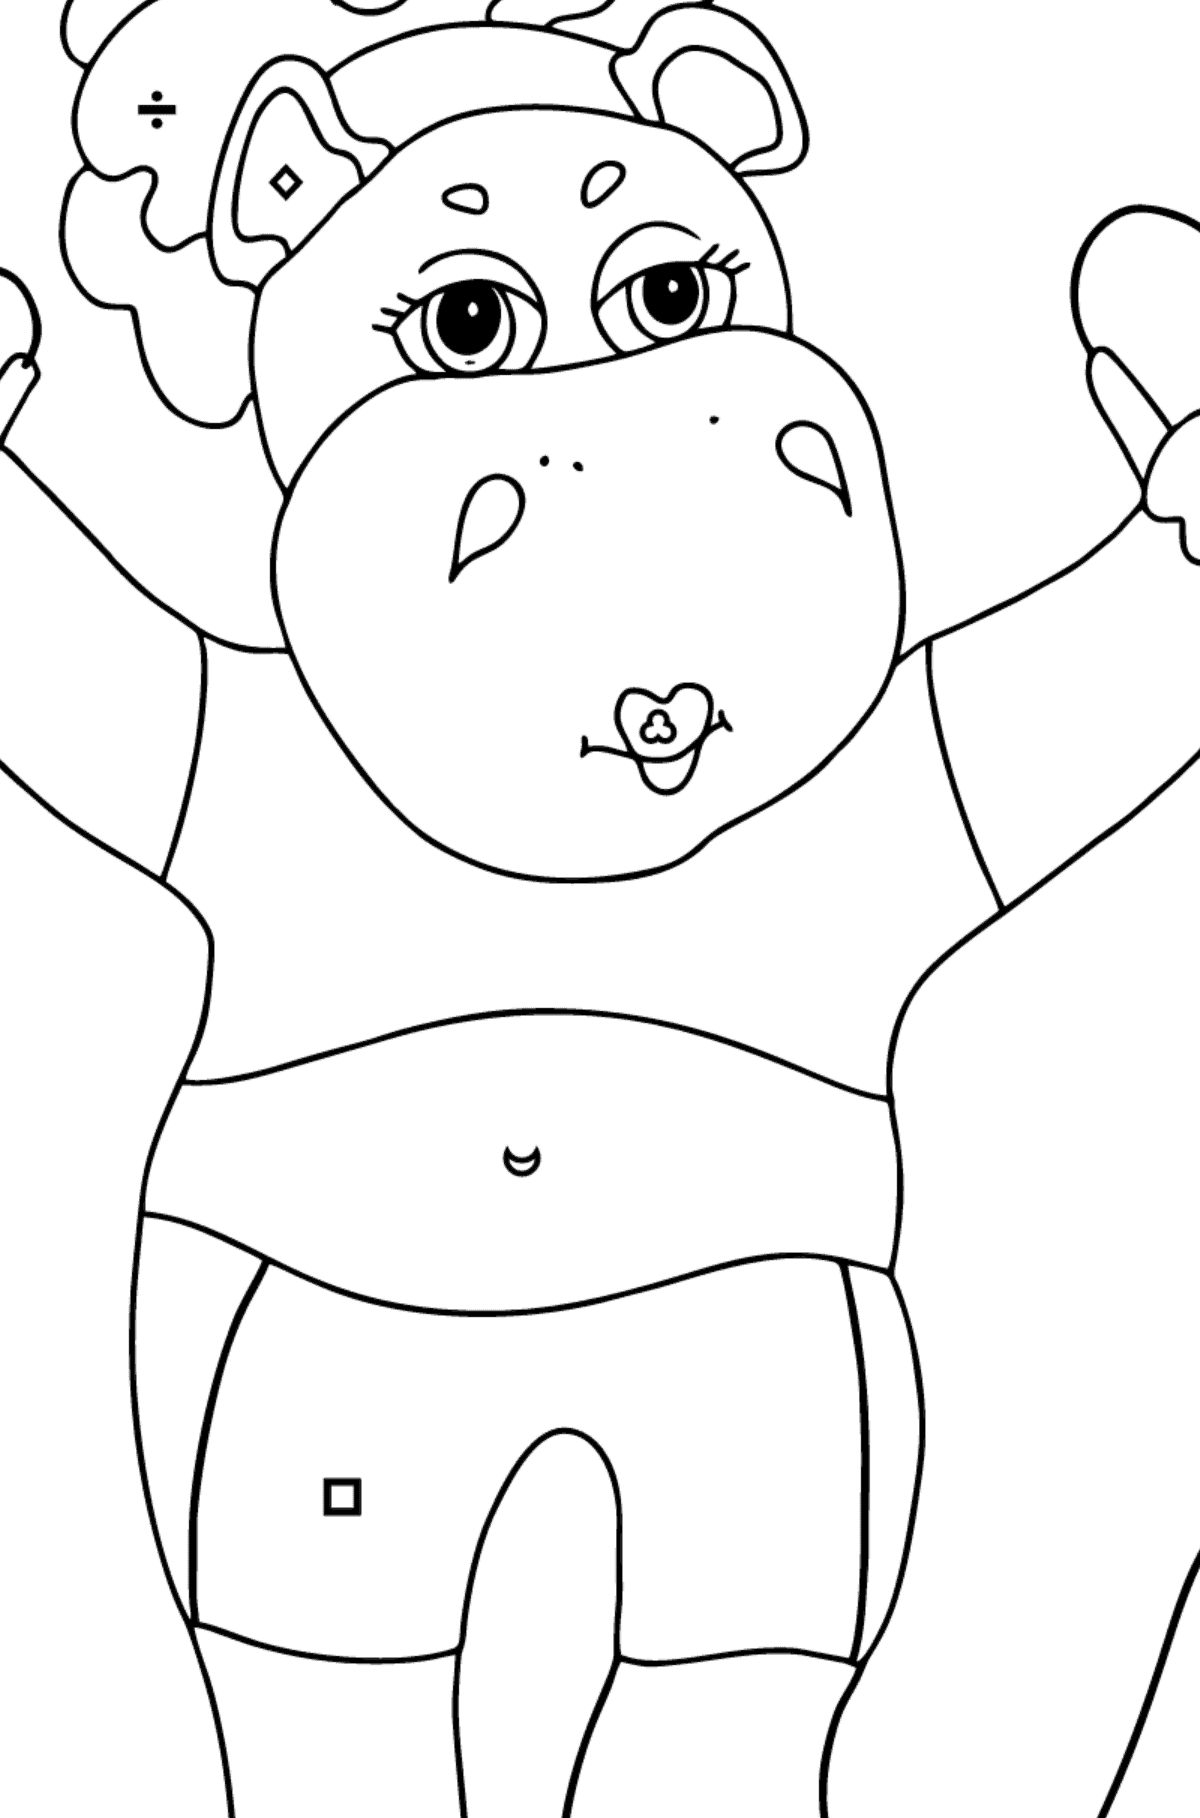 Coloring Page - A Hippo with a Jump Rope for Kids  - Color by Symbols and Geometric Shapes